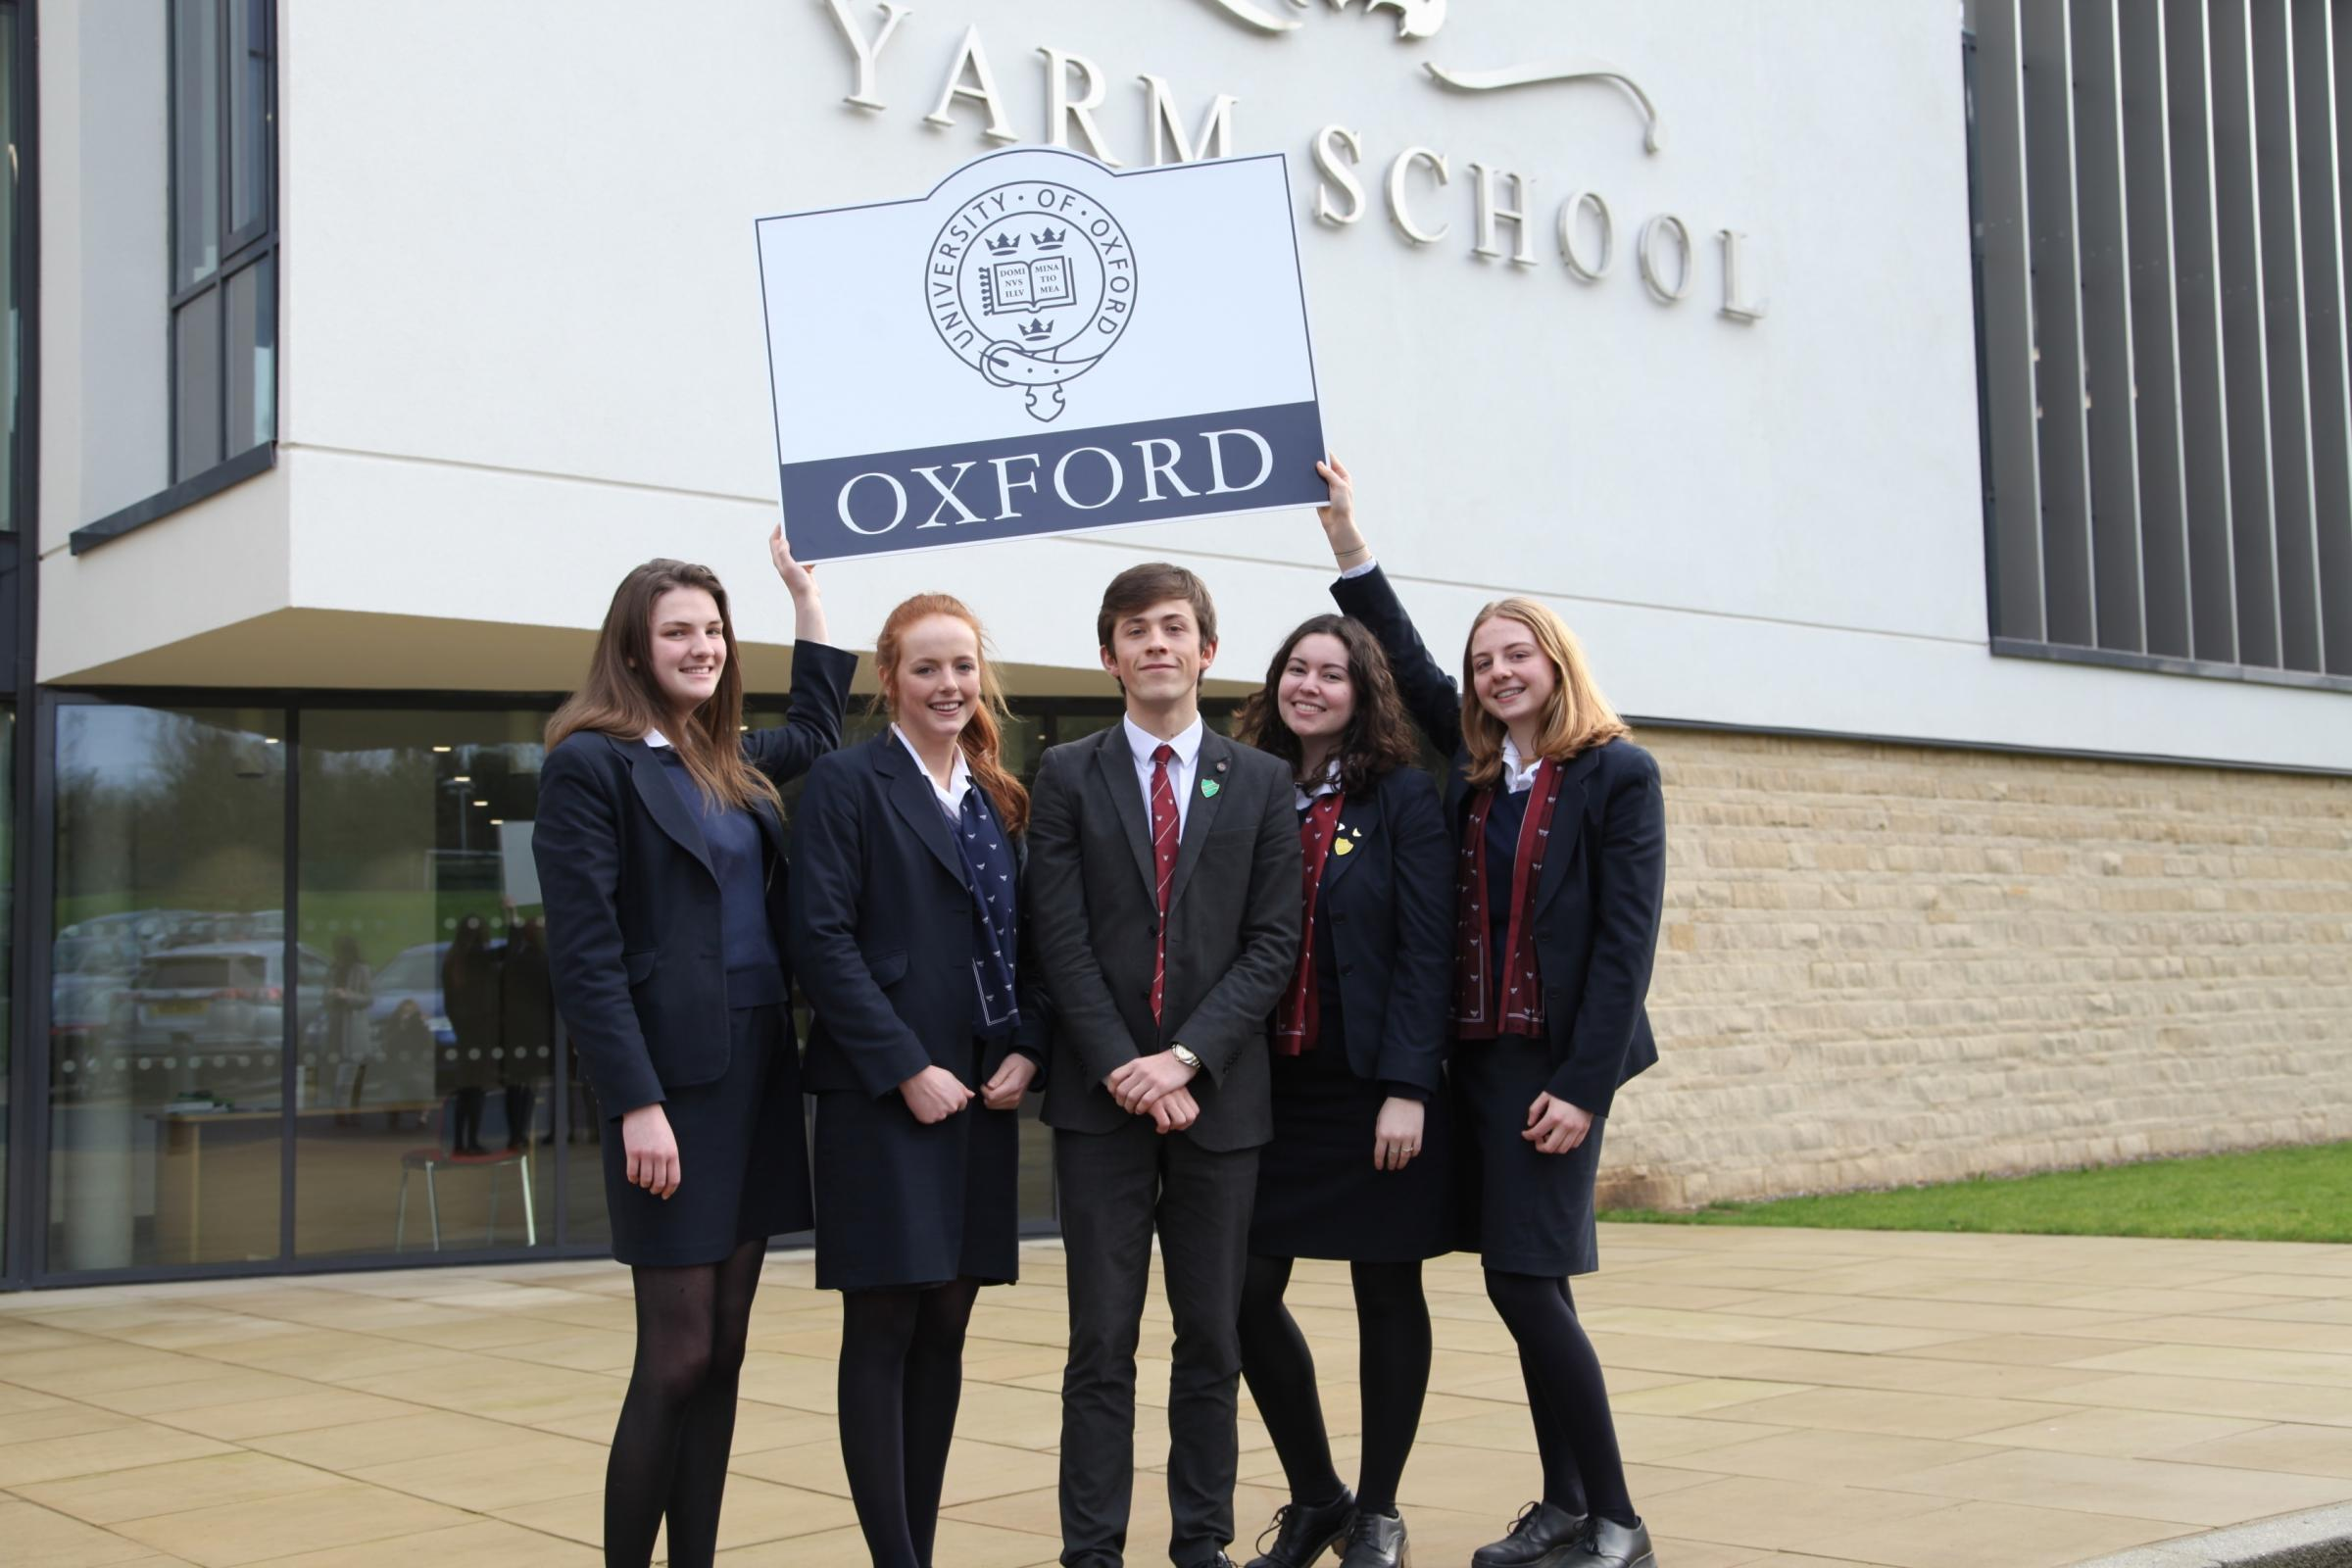 From left, Yarm School students, Isobel Jury, Katie Anderson, Michael Lister, Sophie Elliot and Phoebe White